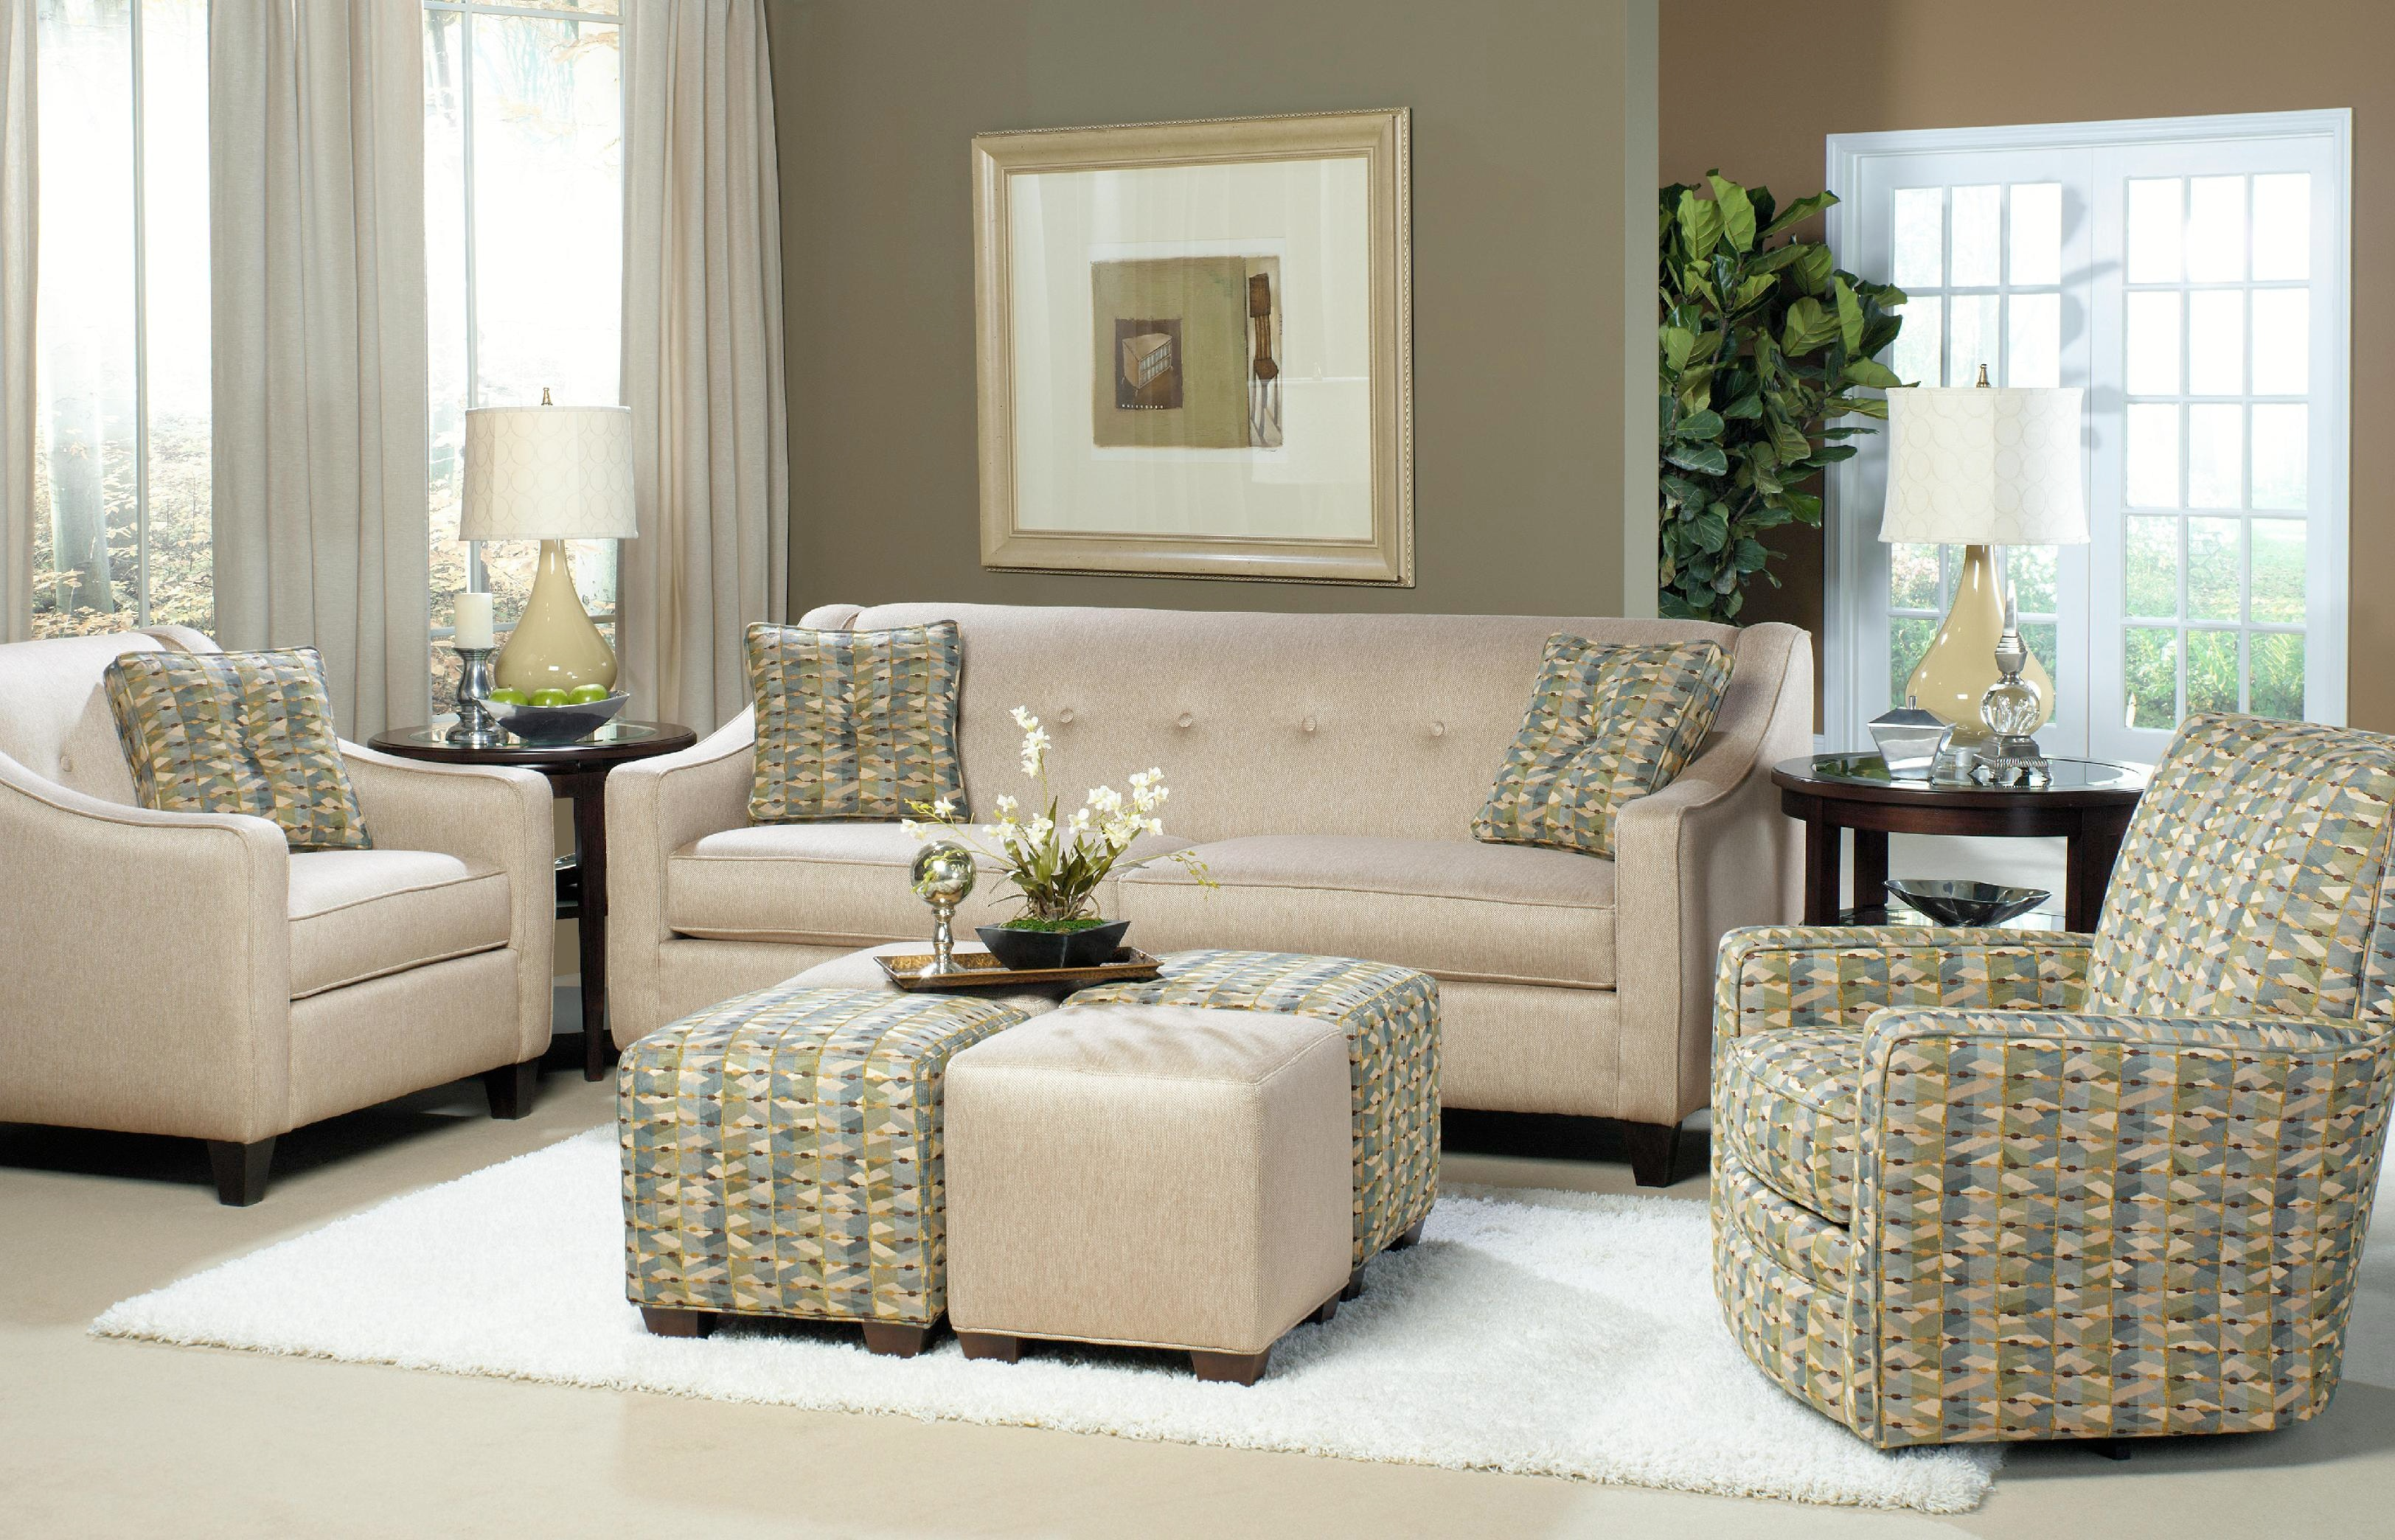 Craftmaster living room two cushion sofa 706950 sleeper also available craftmaster for Encore home designs by craftmaster